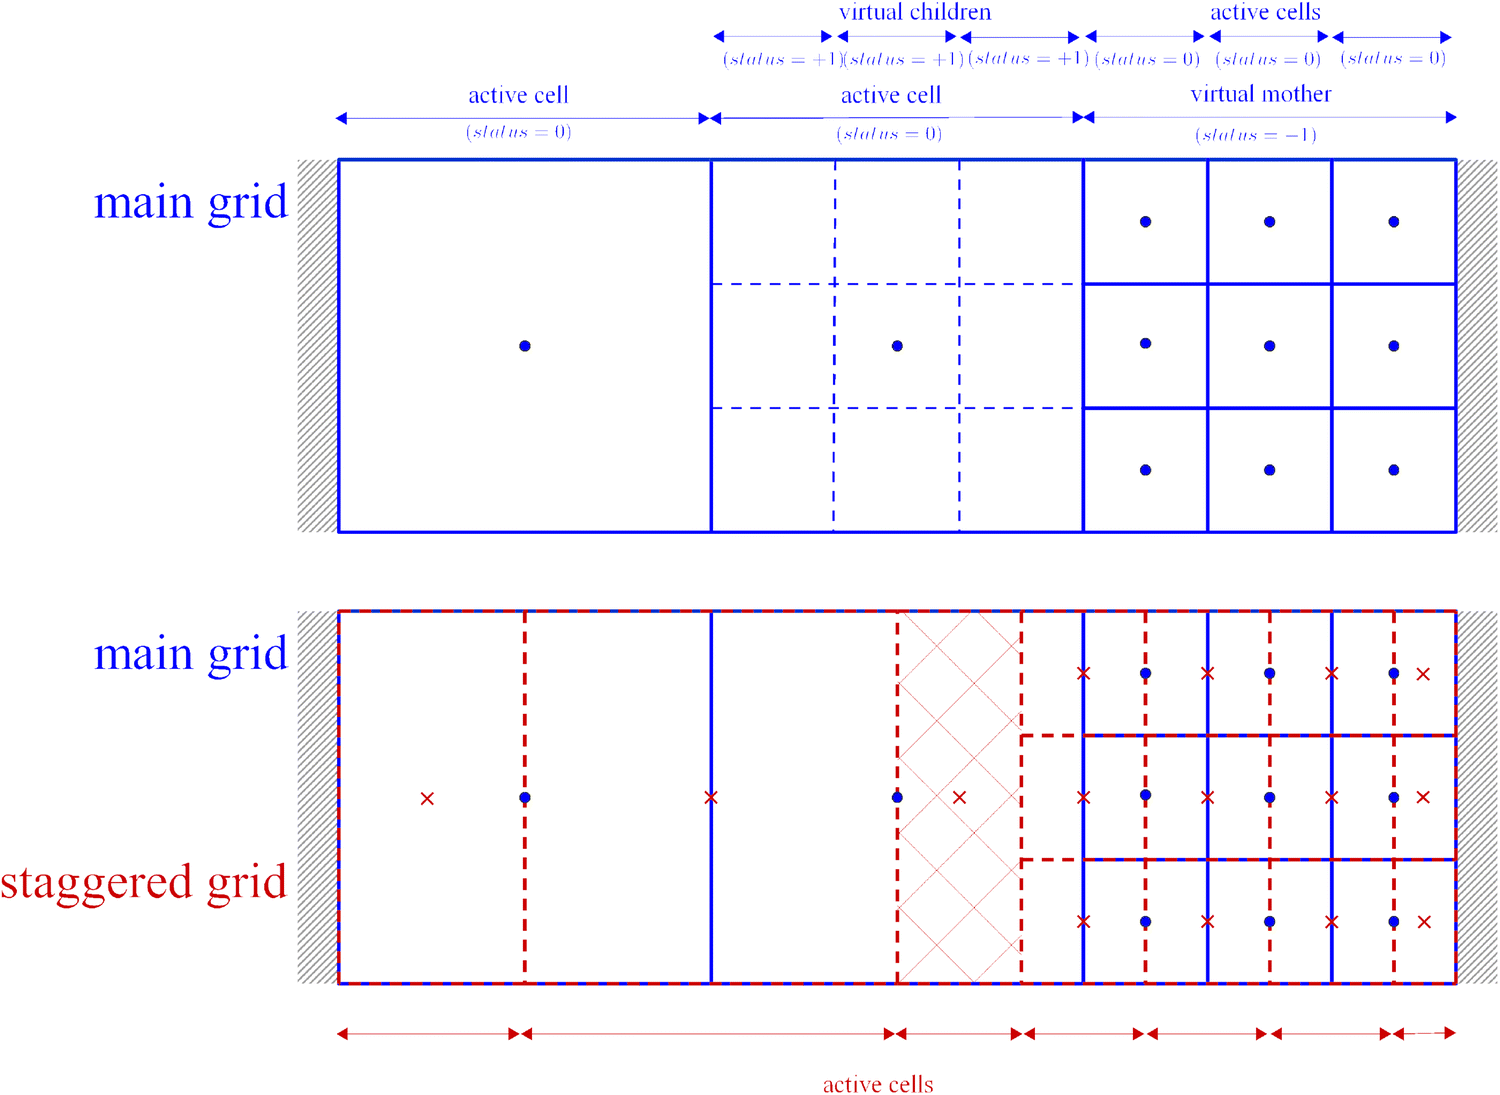 Discontinuous Galerkin Methods For Compressible And Incompressible Item Safety0021 Basic Components Symbols In A Circuit Chart Open Image New Window